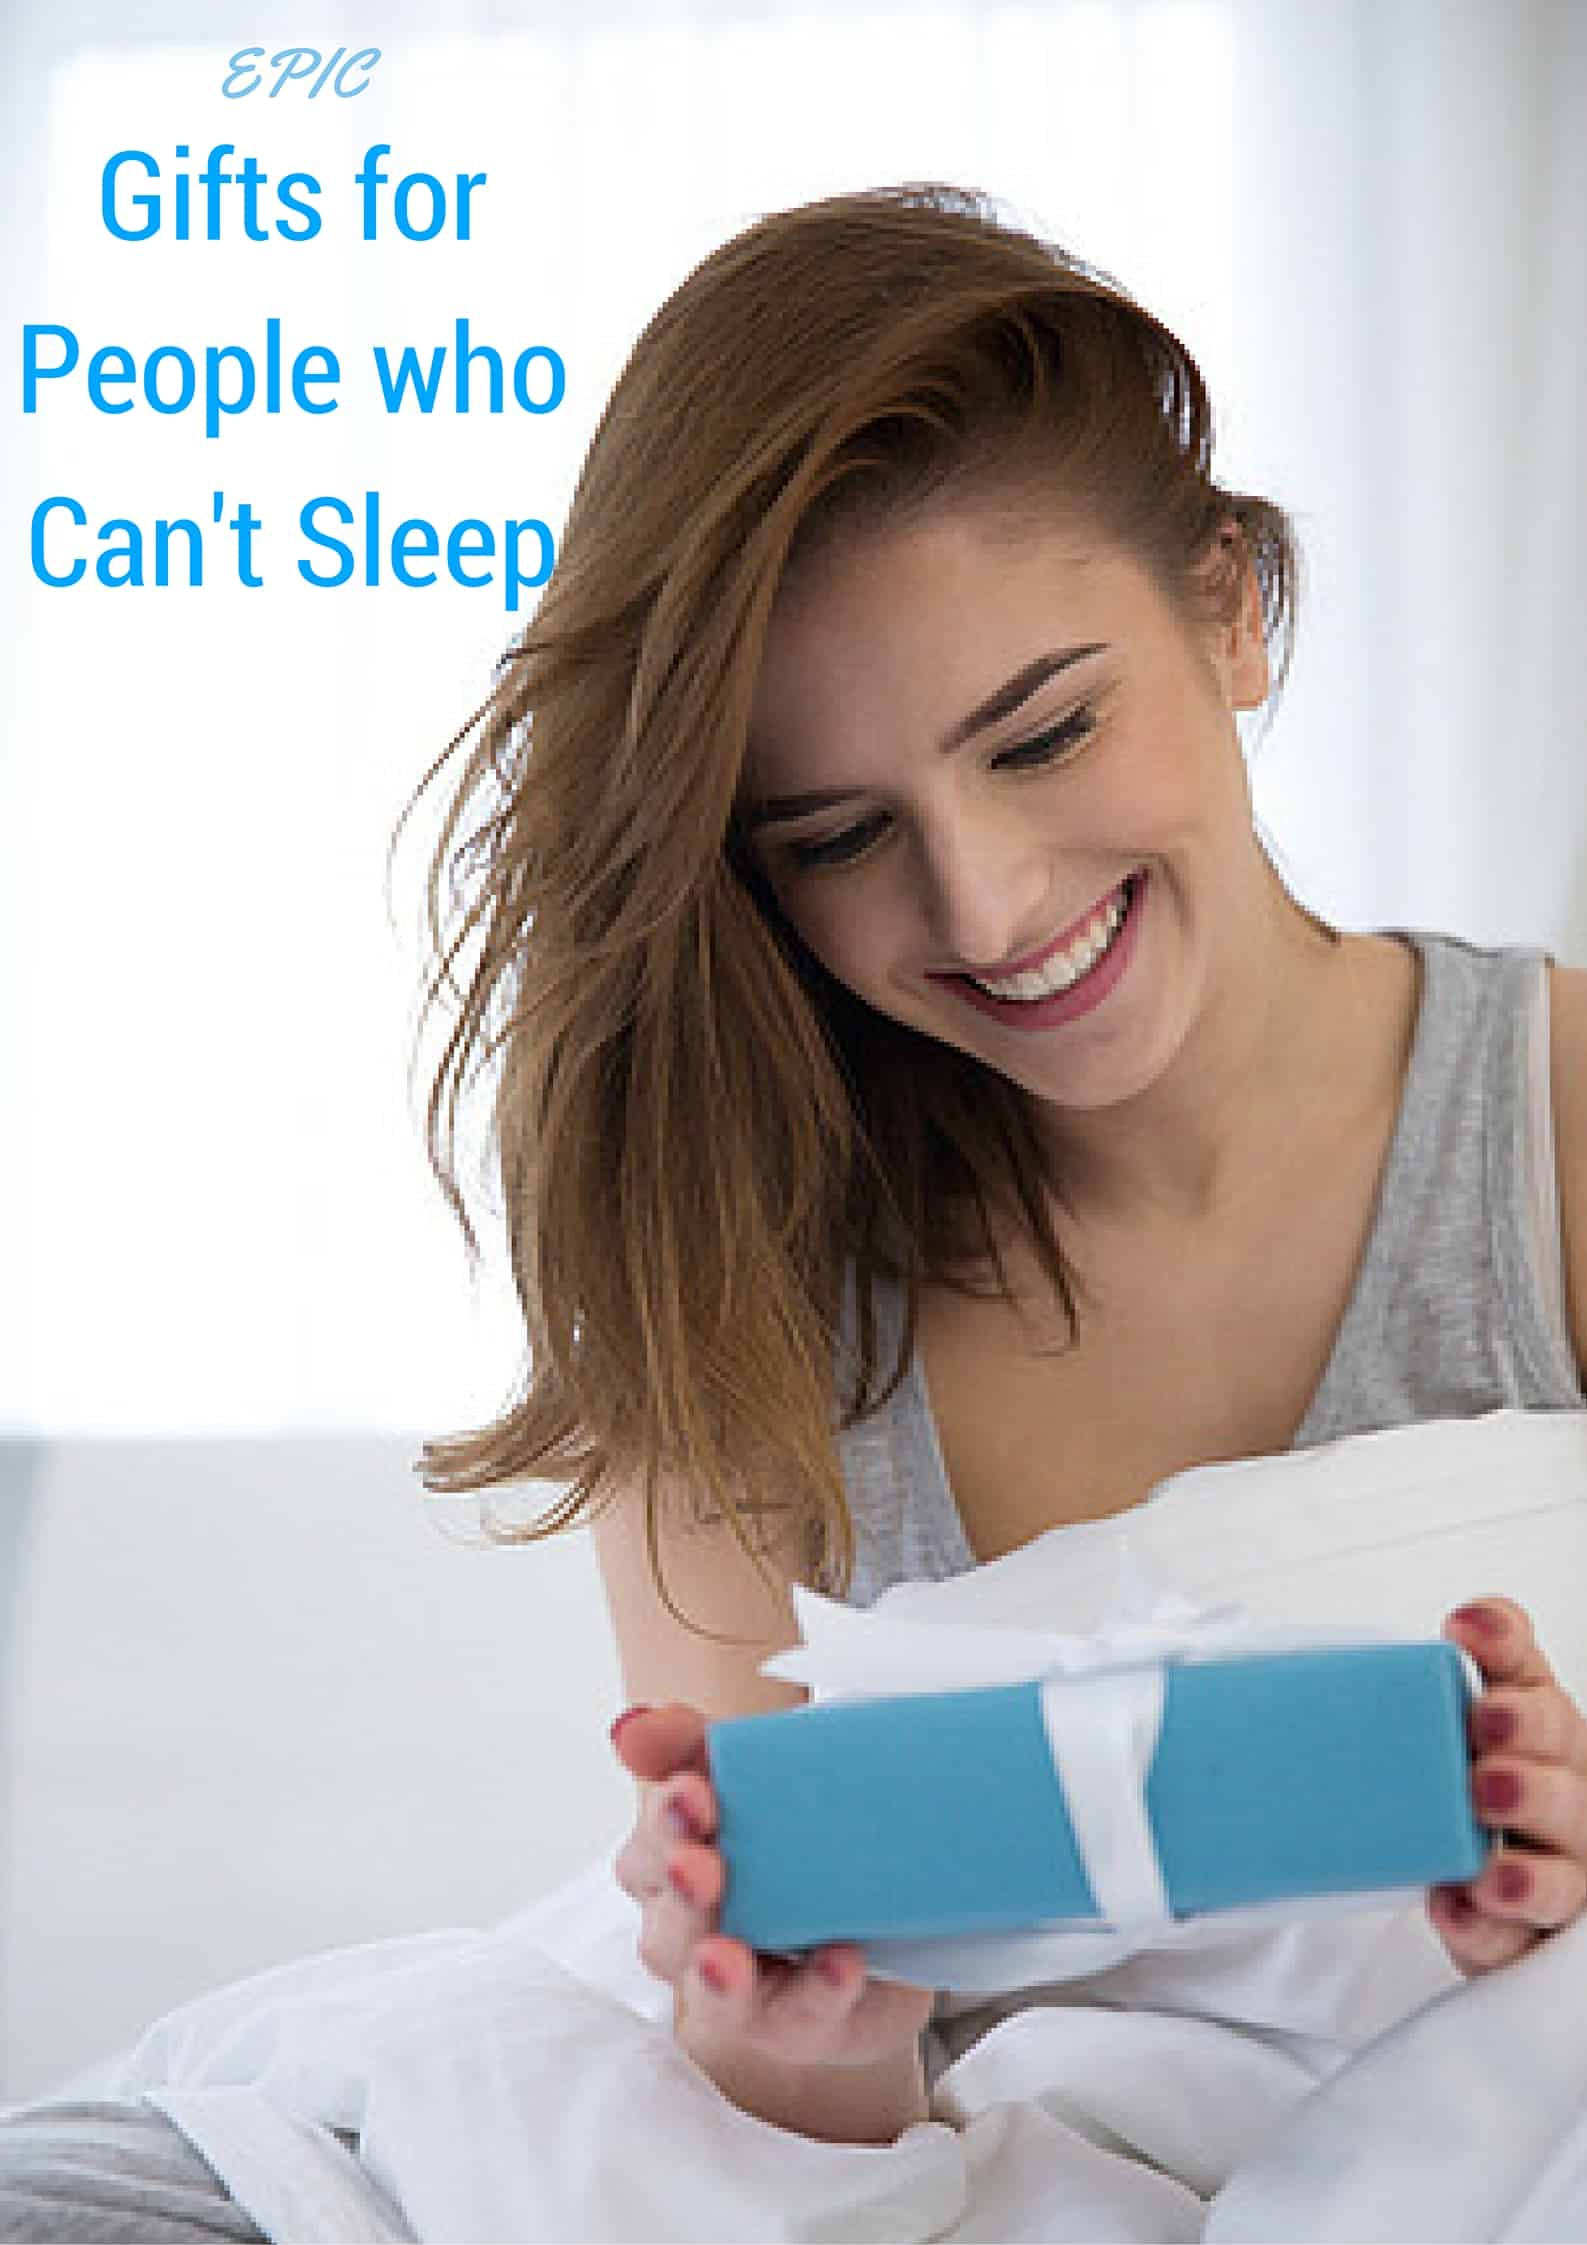 Do you have someone on your gift list who's an insomniac or maybe just loves to sleep? This epic list is chock full of gift ideas for people who can't sleep. (or are just a sleep diva) You know you want some awesome sleep gifts for sweet dreams. #sleep #giftguide #insomnia